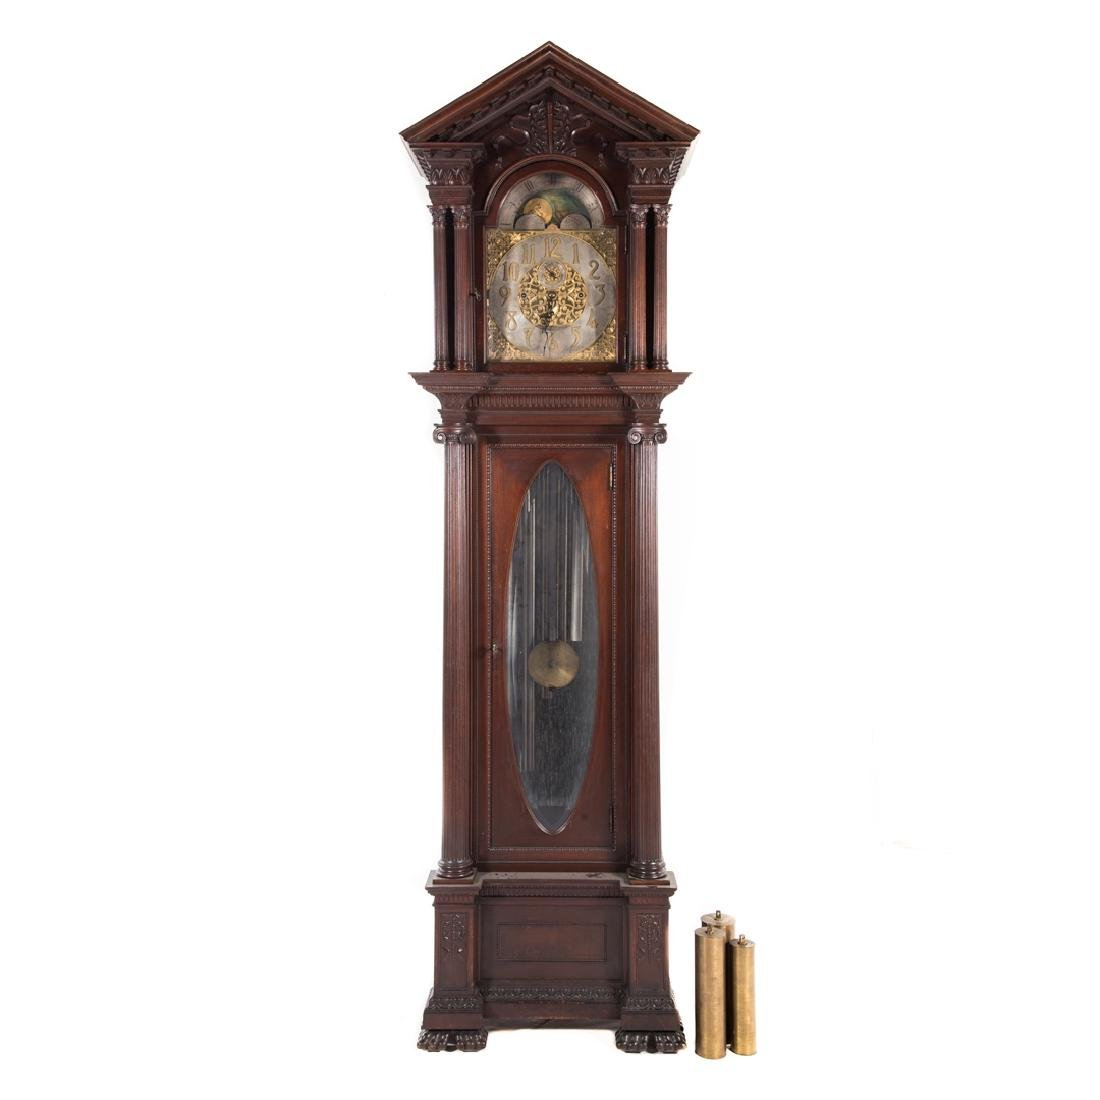 Classical Revival style grandfather clock